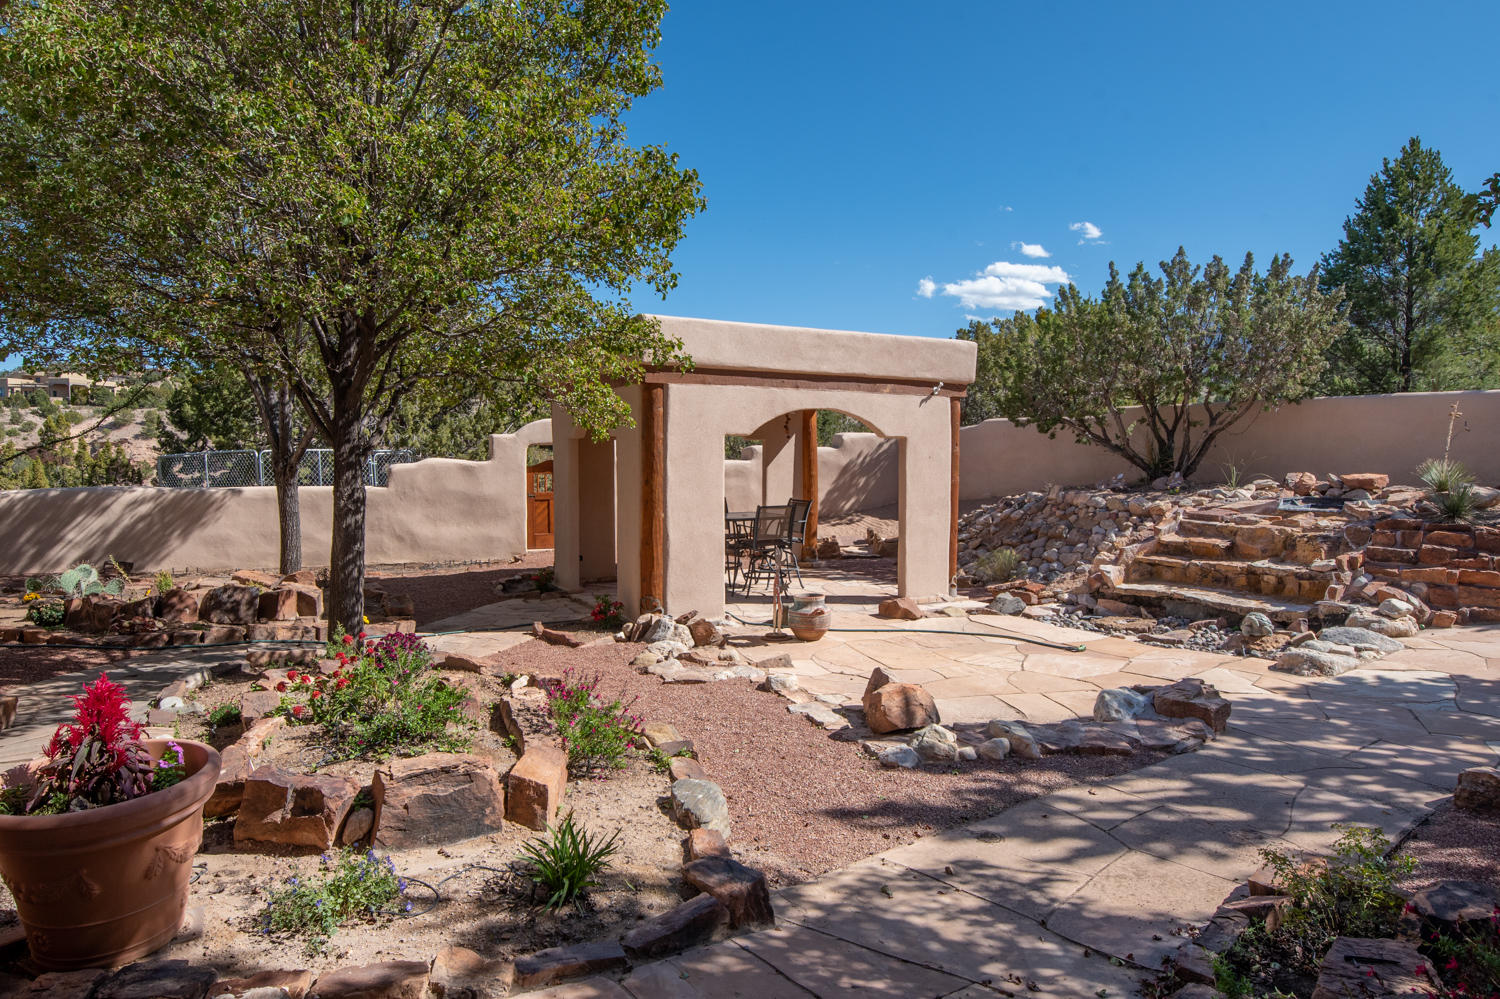 6 ADOBE Road, Placitas, NM 87043 - Placitas, NM real estate listing